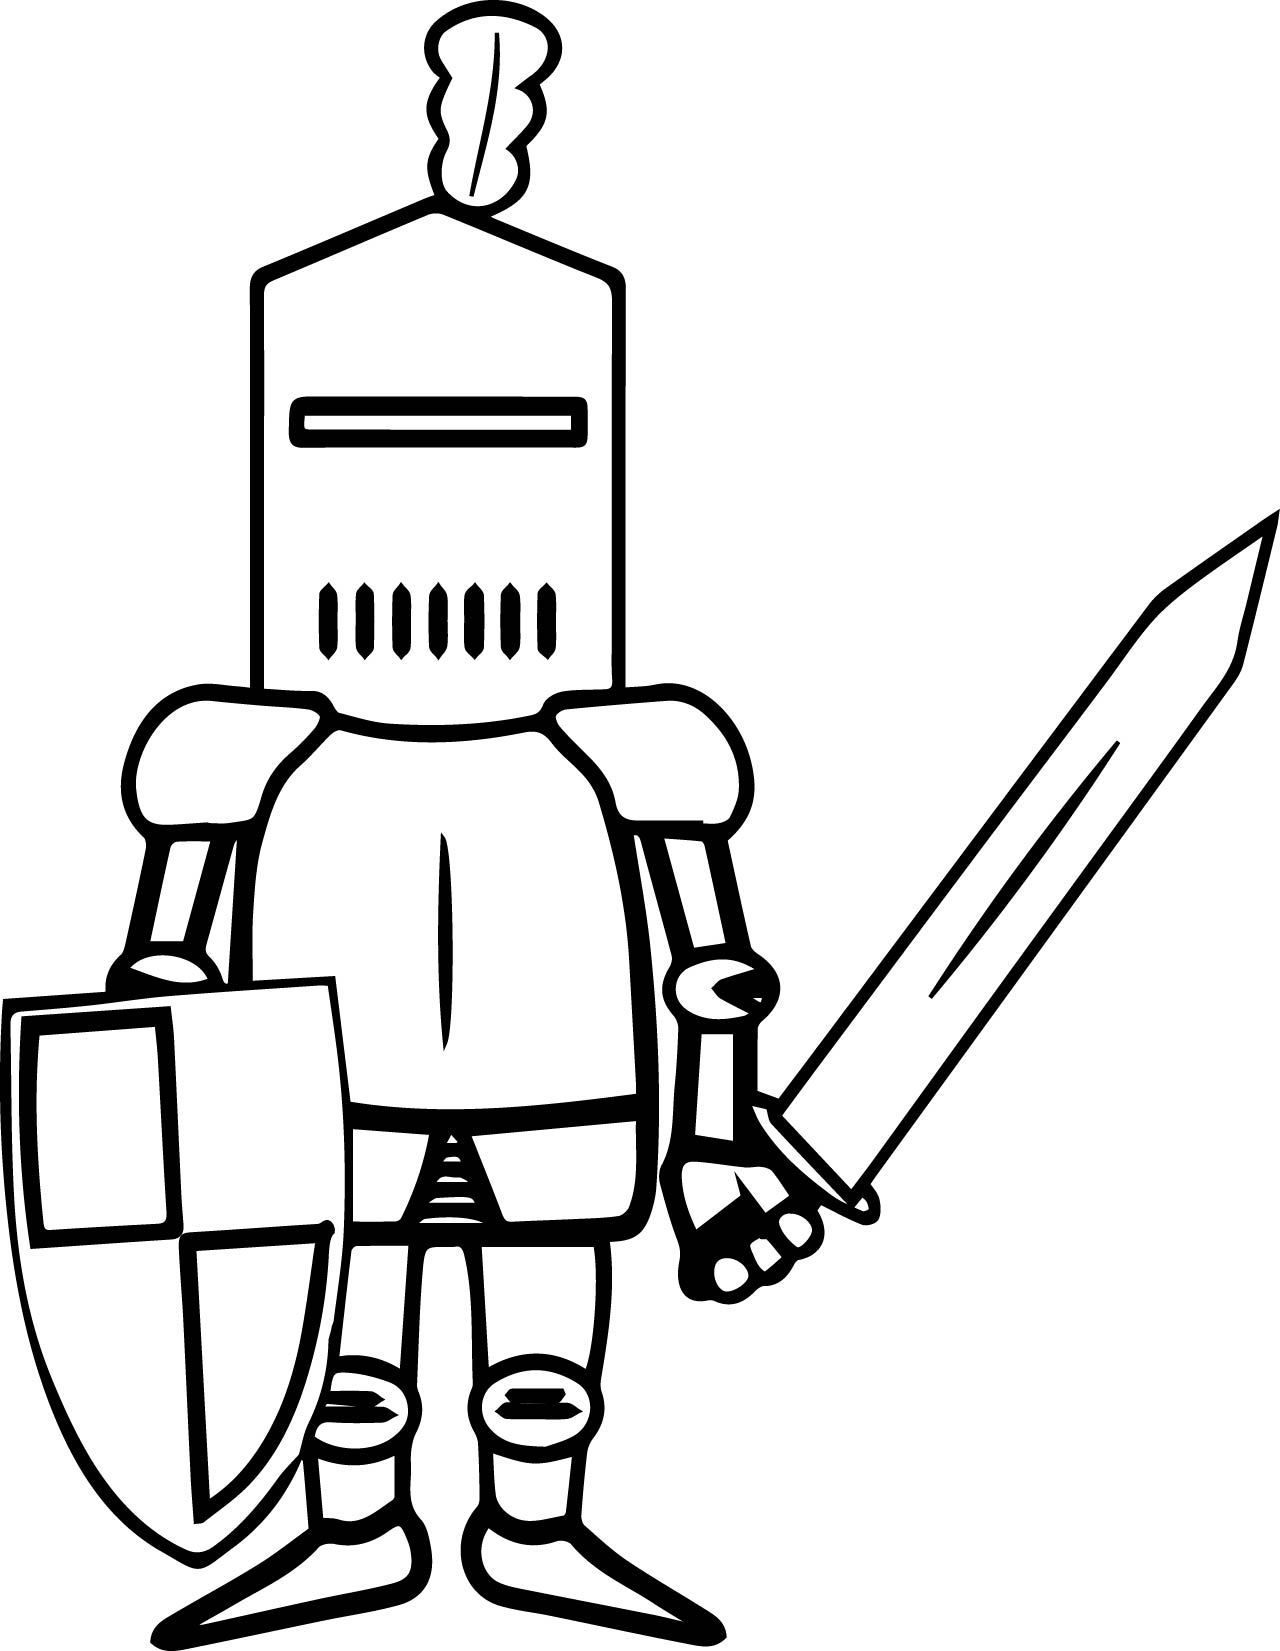 Knight Sword Coloring Page Coloring Pages Coloring Pages For Kids